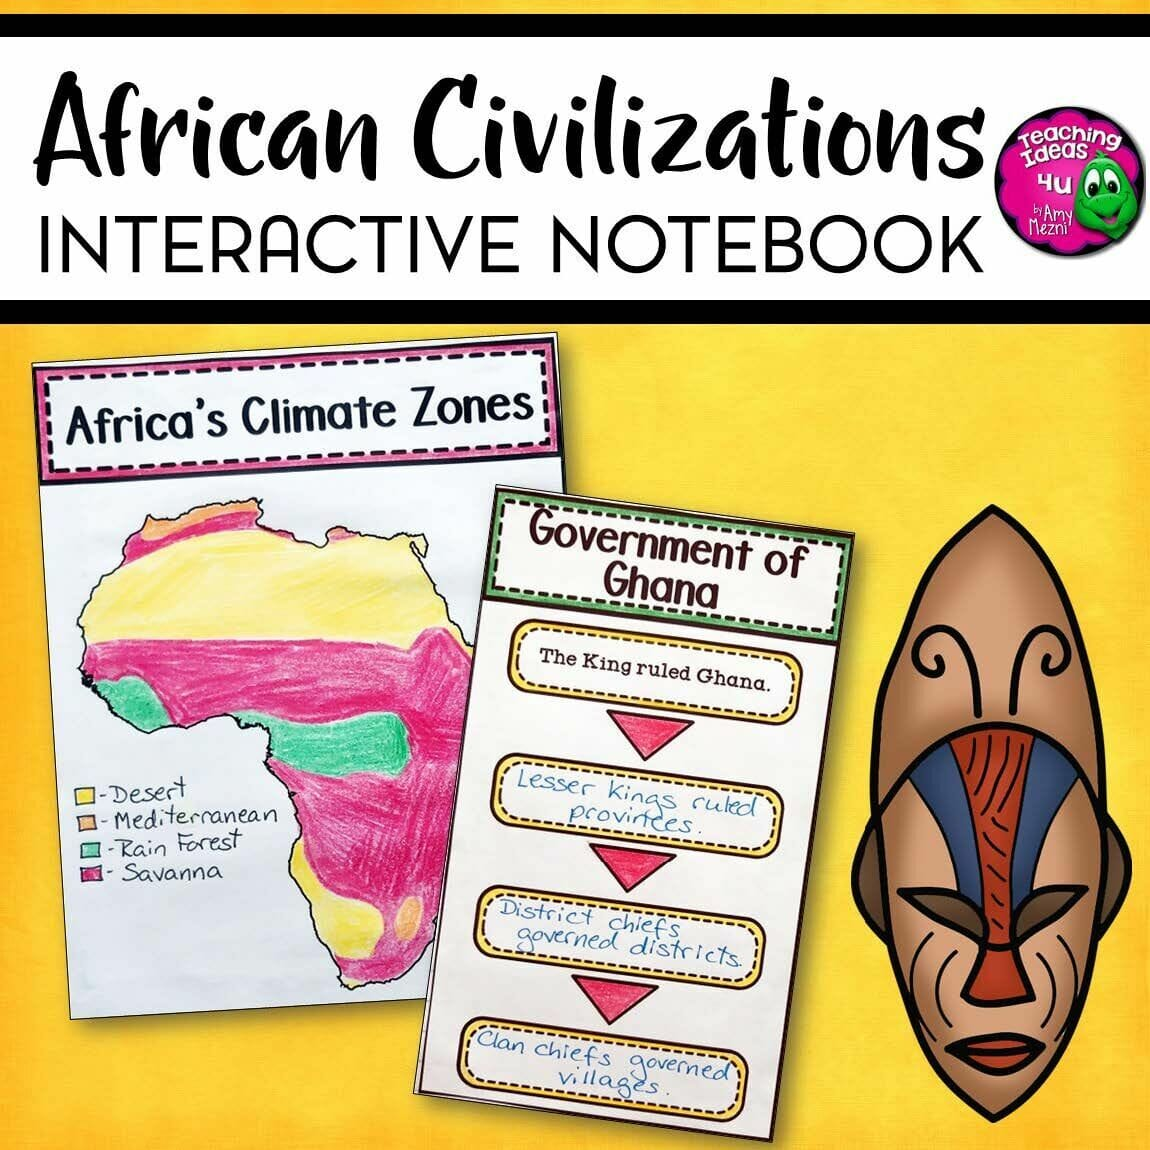 Teaching Ideas 4U - Amy Mezni - African Civilizations Interactive Notebook Unit 6th Grade INB